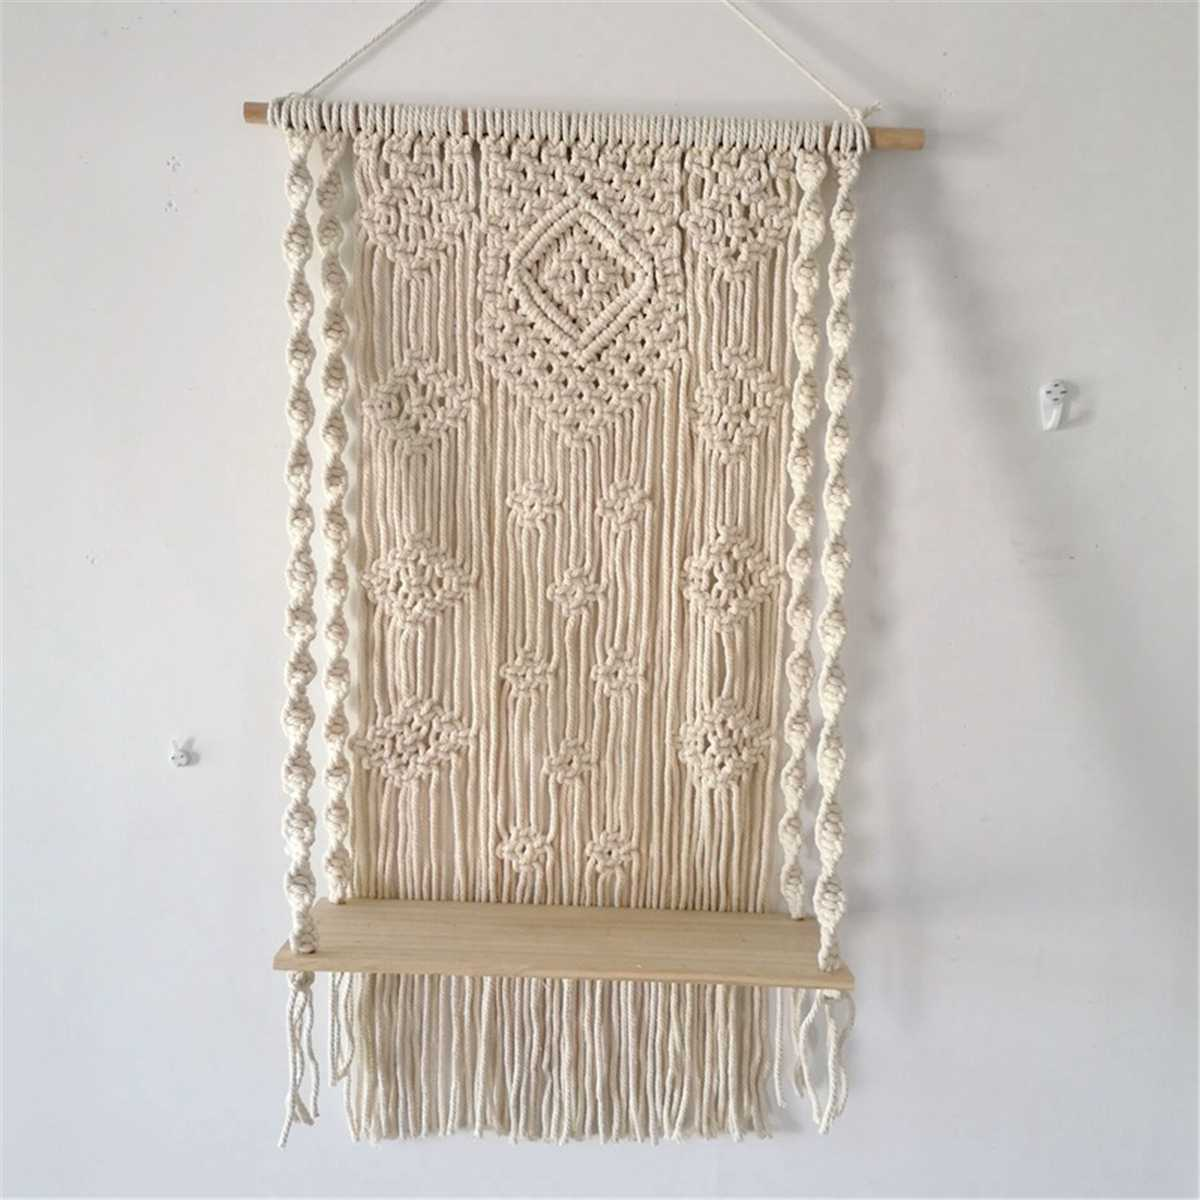 40x15cm Bohemian Wooden Handmade Macrame Wall Hanging Rope Shelf Floating Plant Rack Stand Macrame Tapestry Home Decor Ornament